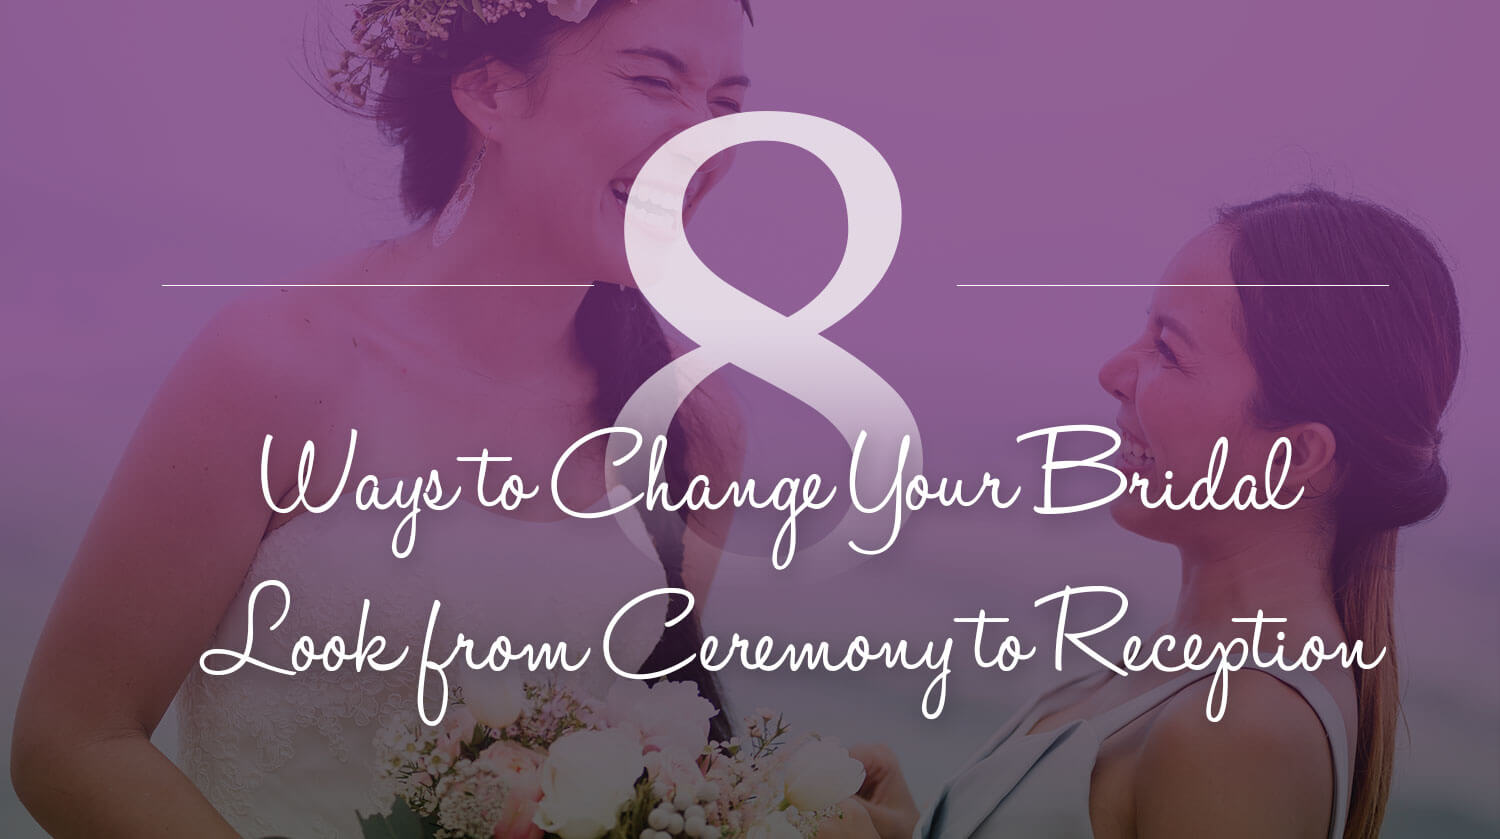 8 Ways to Change Your Bridal Look from Ceremony to Reception